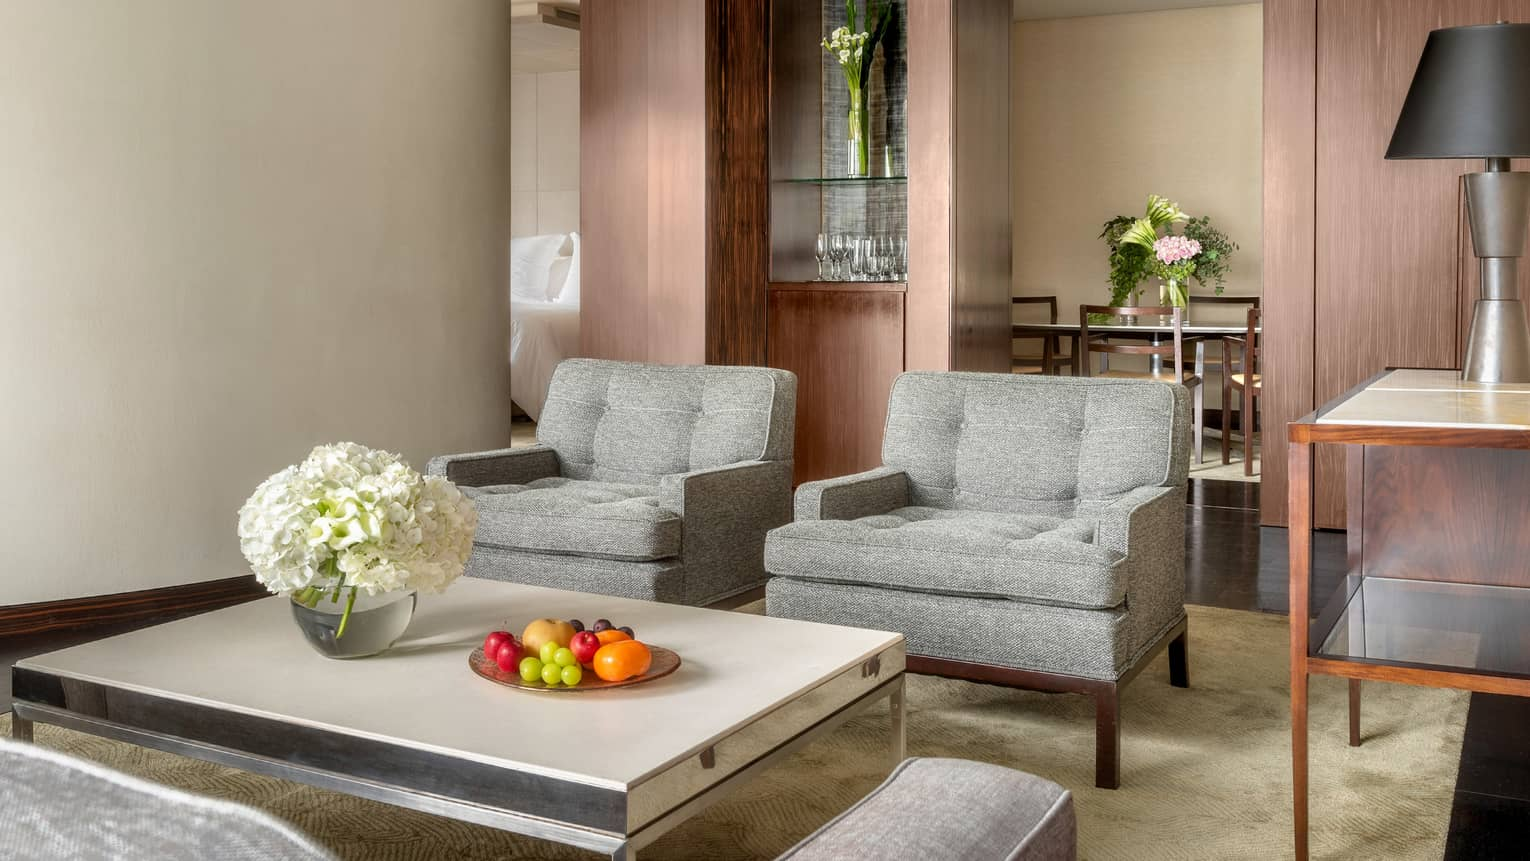 Deluxe One-Bedroom Suite living room vignette with gray club chairs and white coffee table